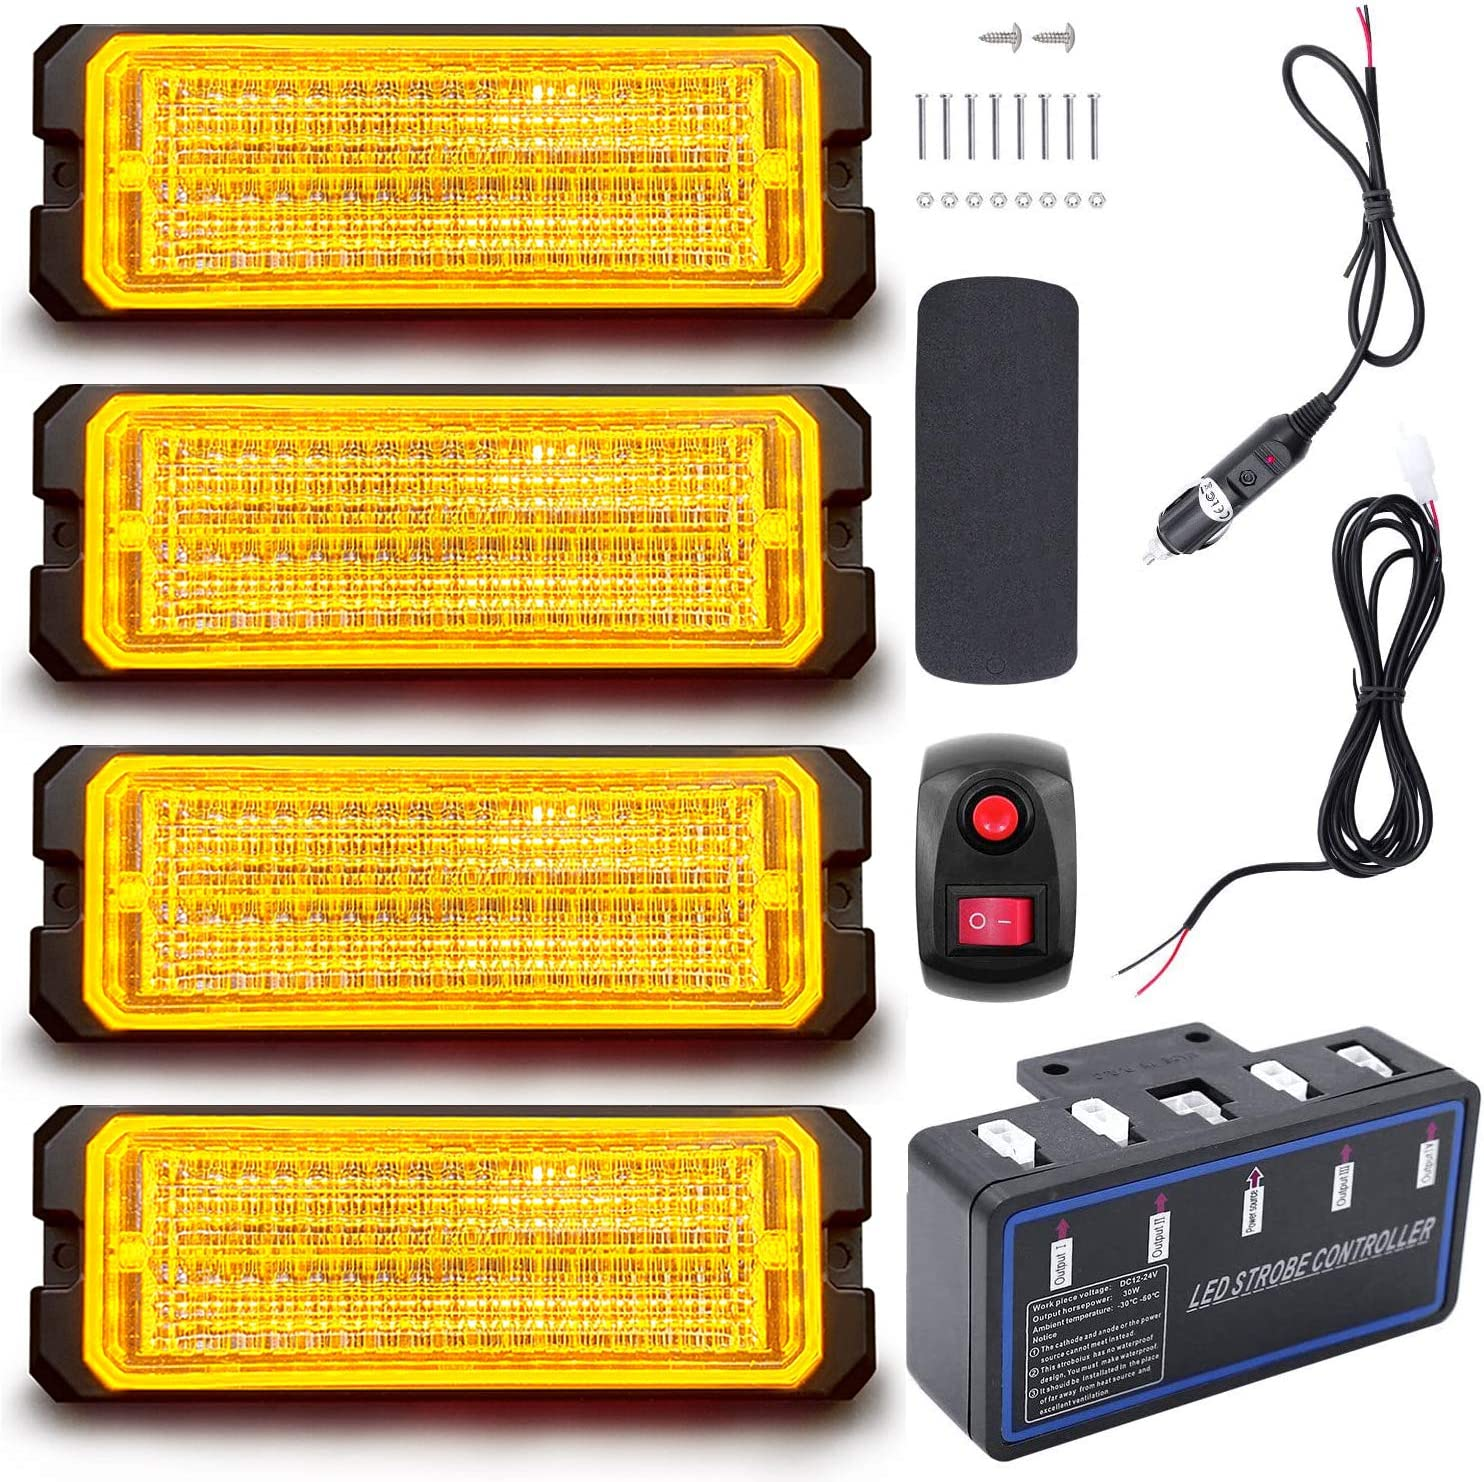 Led Warning Lights 4pcs Emergency Warning Caution Hazard Construction Ultra Slim Sync Feature Car Truck with Main Control Box Surface Mount Amber